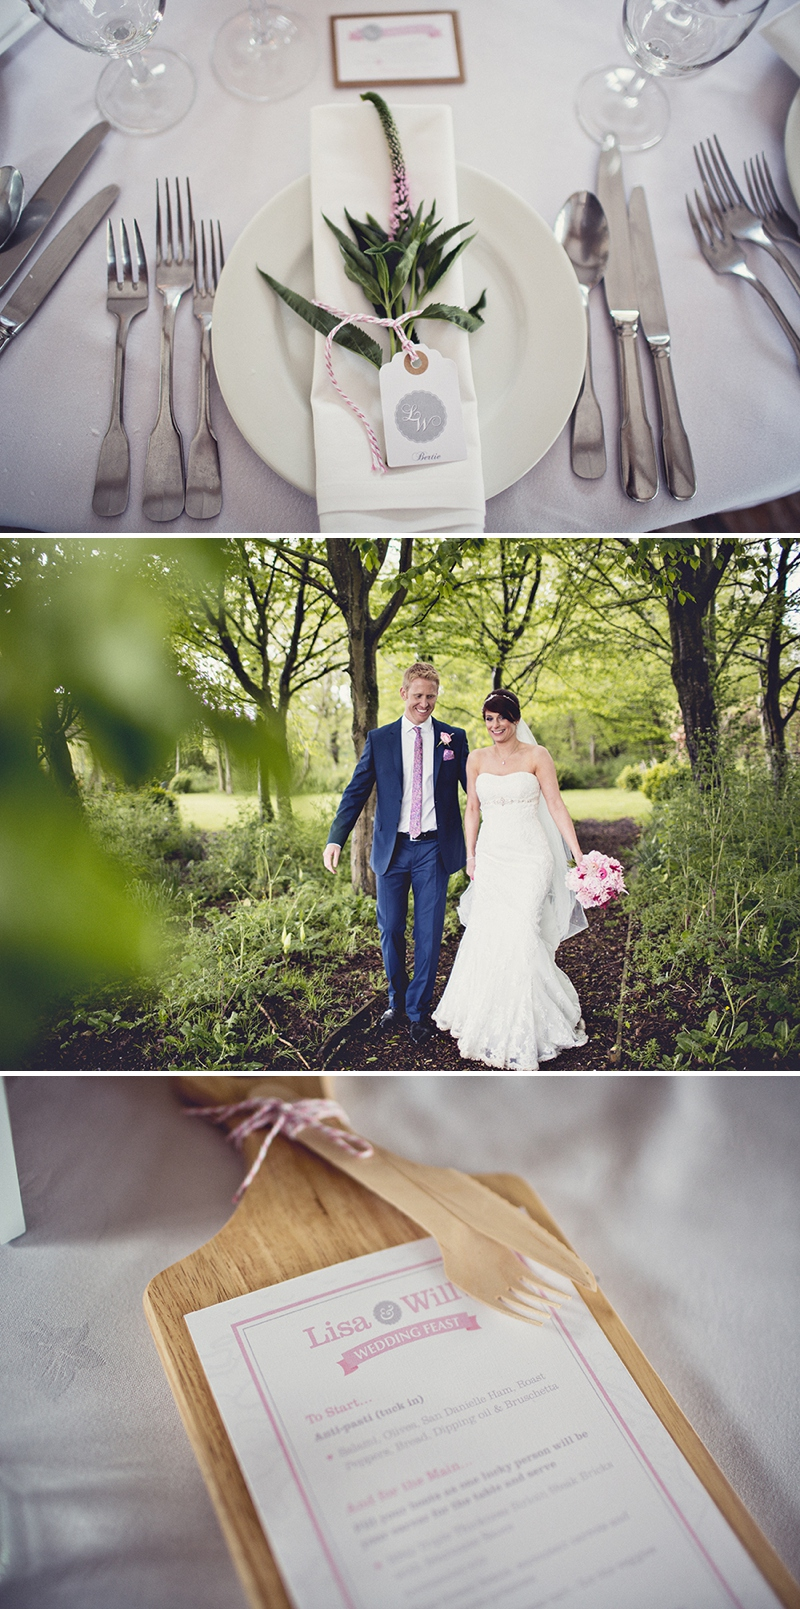 A beautiful cripps barn wedding reception with a pink and grey a pretty wedding at cripps barn by anna clarke photography with a lace pronovias dress0313 fandeluxe